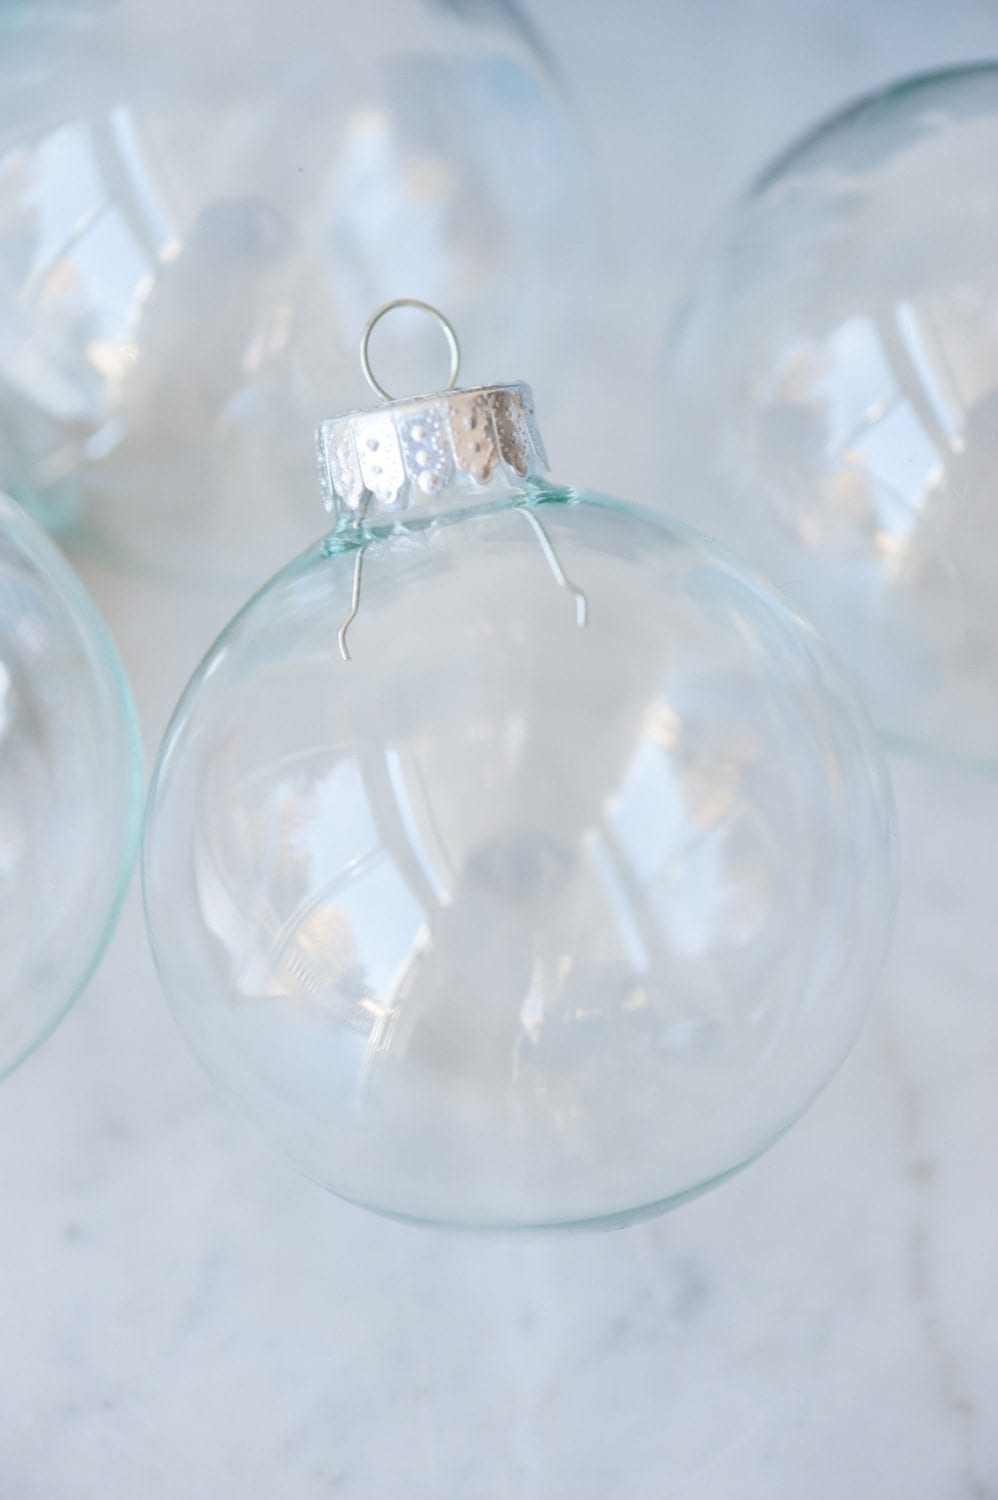 DIY Painted Gold Leaf Ornaments by entertaining blog @cydconverse | How to decorate glass ornaments